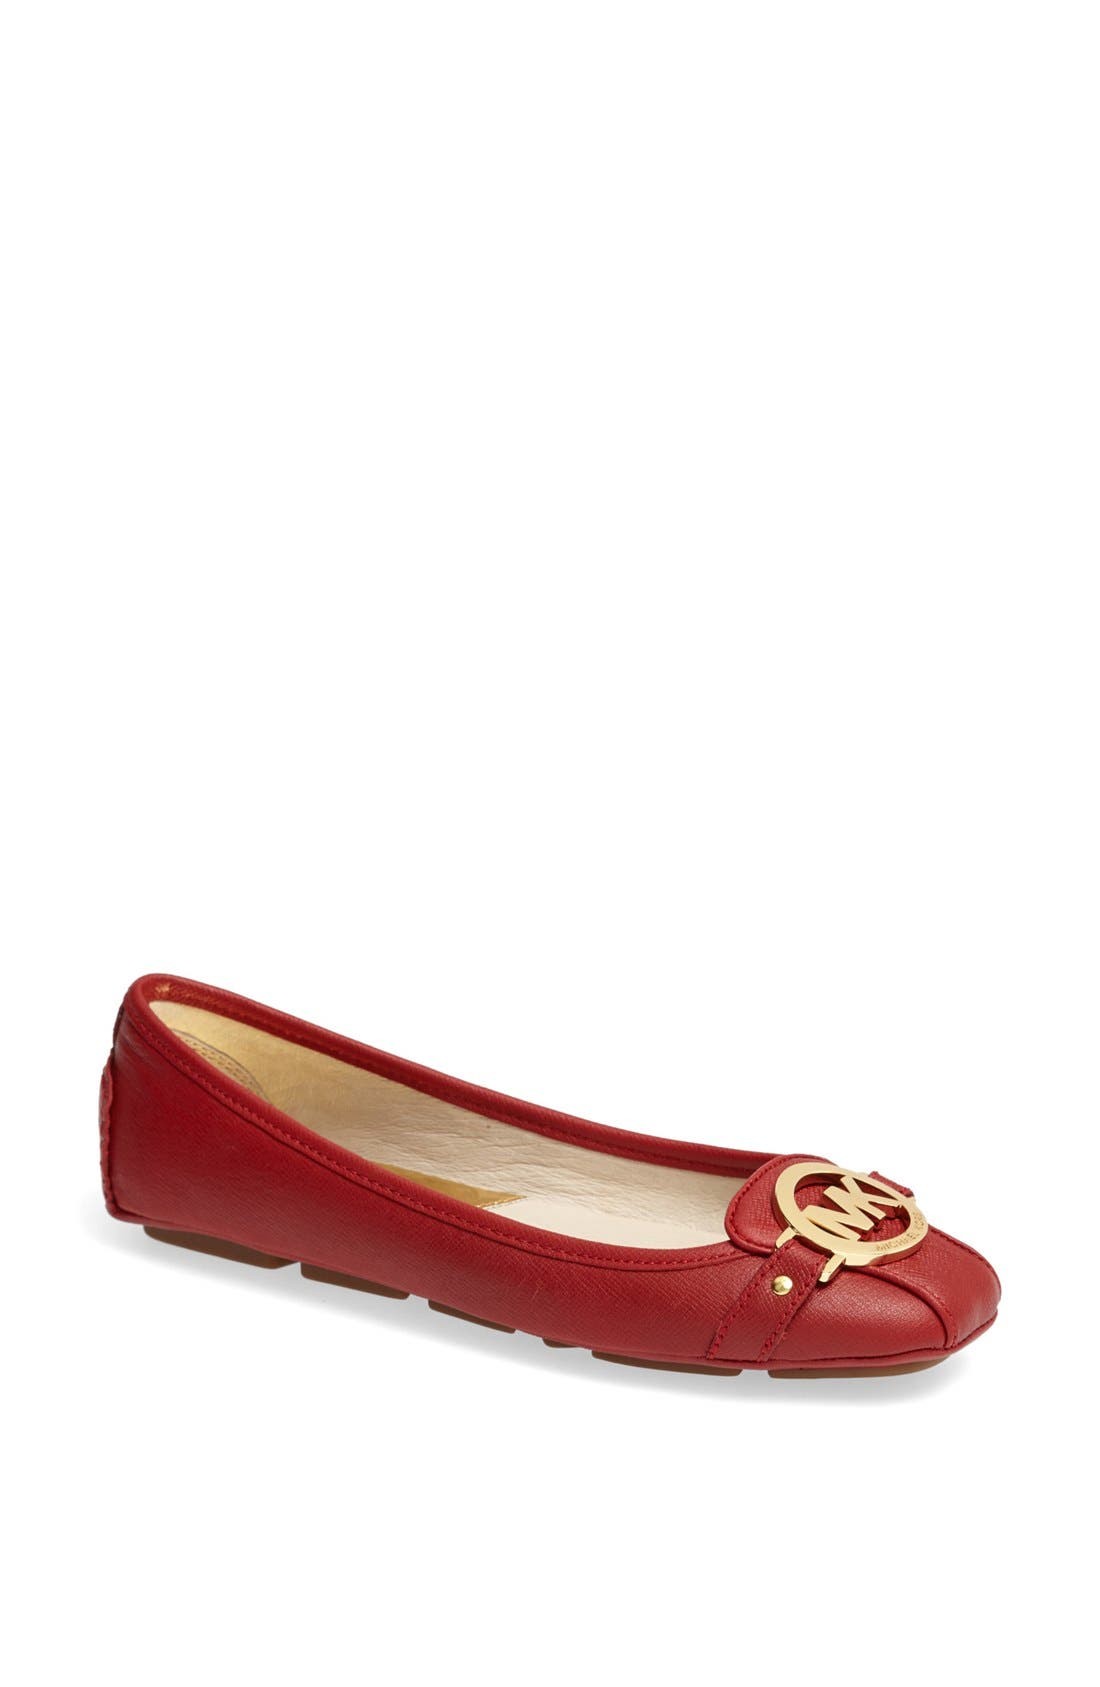 Alternate Image 1 Selected - MICHAEL Michael Kors 'Fulton' Moccasin Slip-On